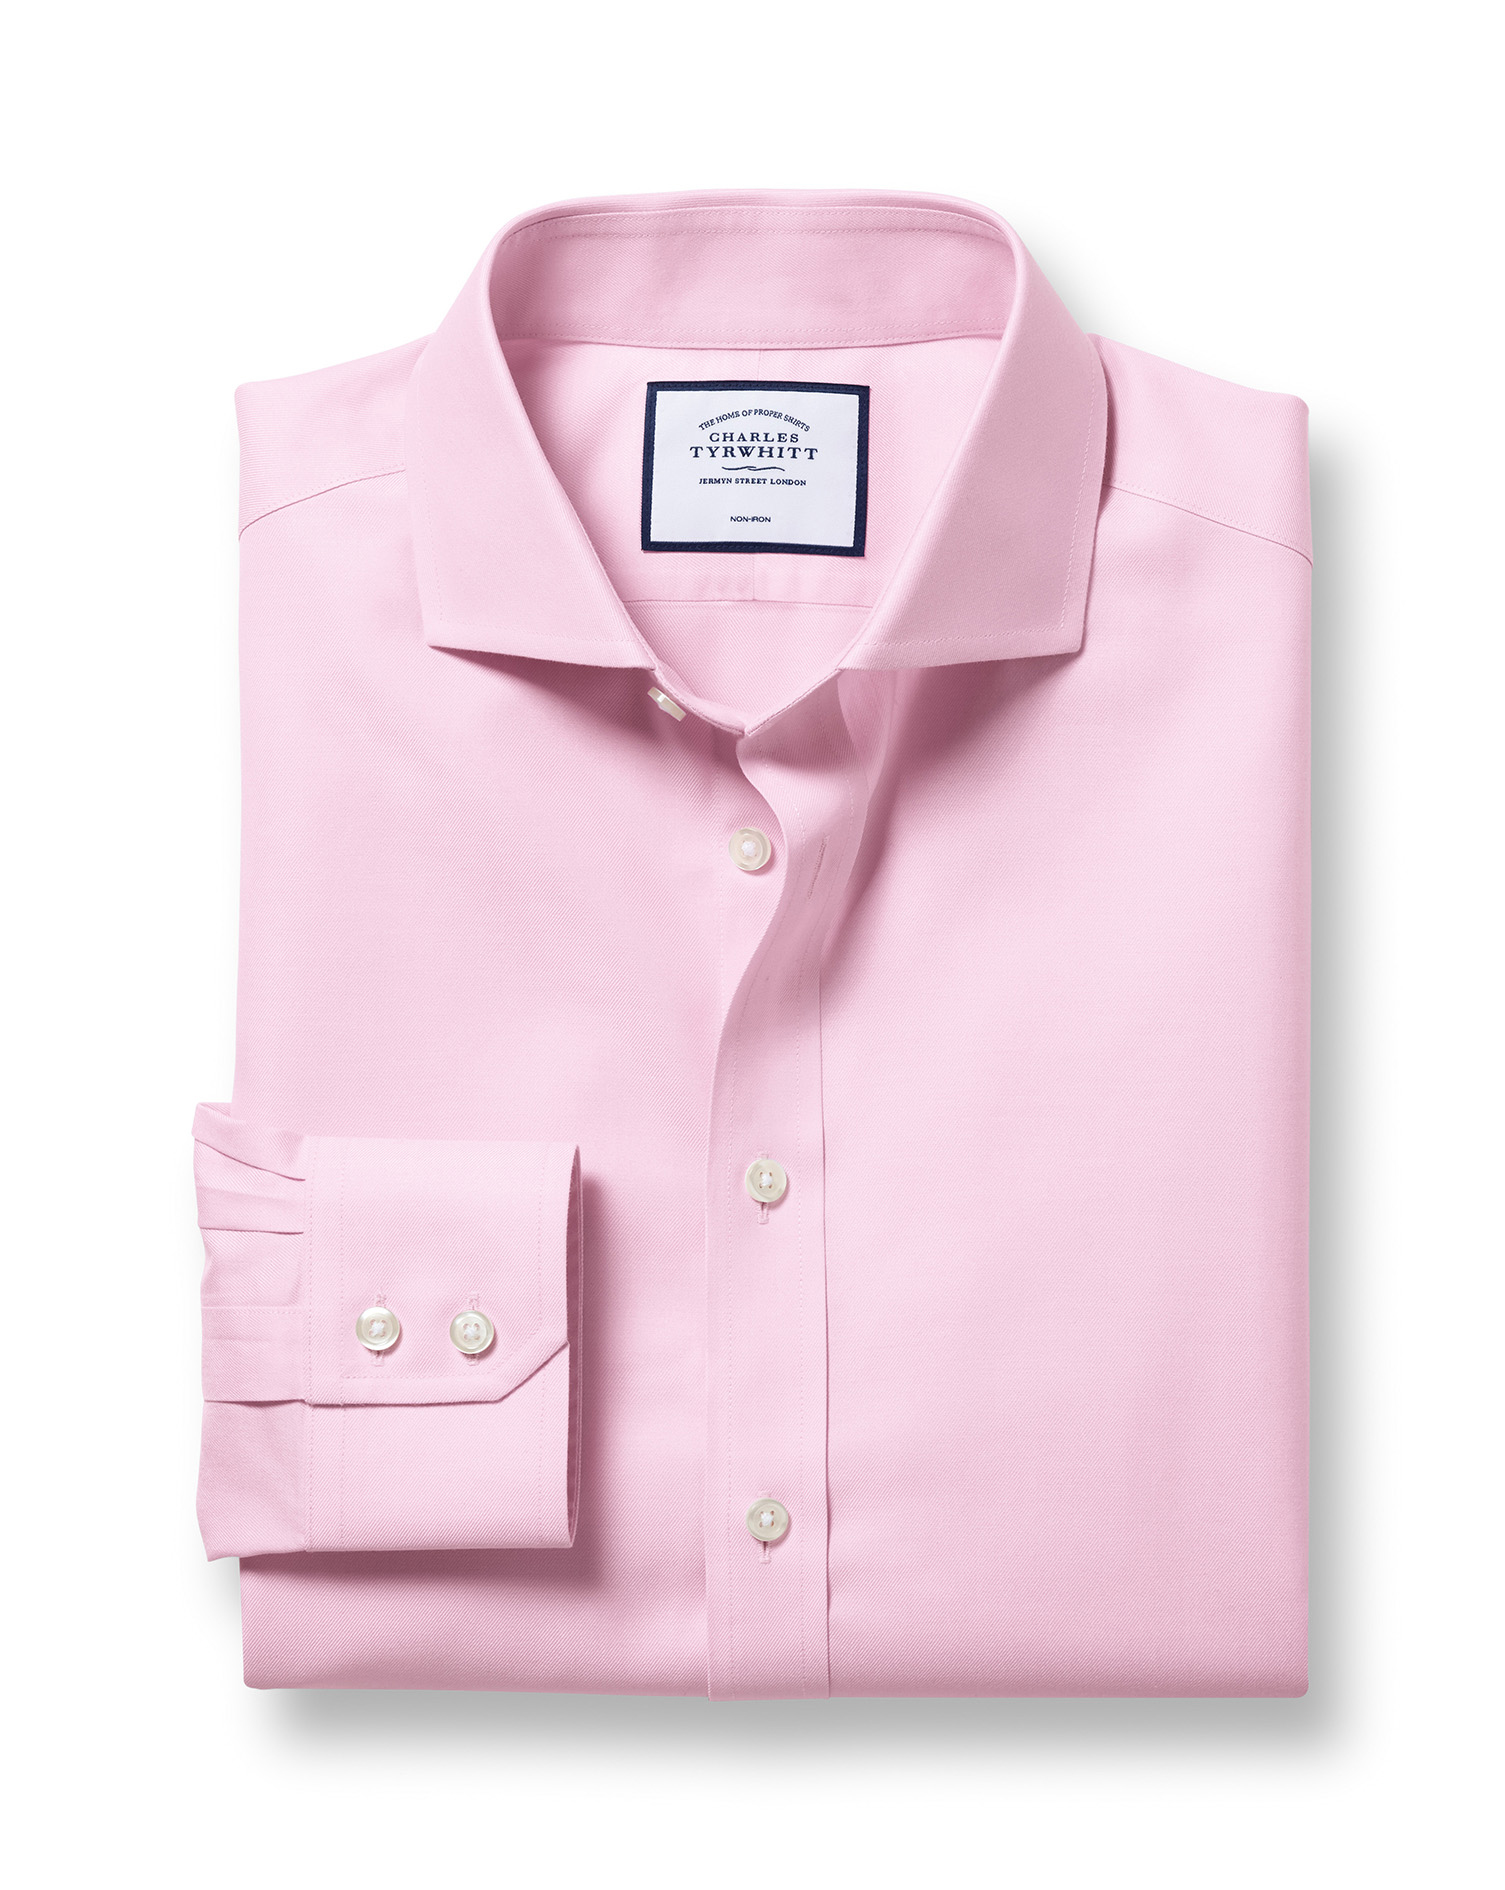 Slim Fit Cutaway Non-Iron Twill Pink Cotton Formal Shirt Double Cuff Size 15/34 by Charles Tyrwhitt